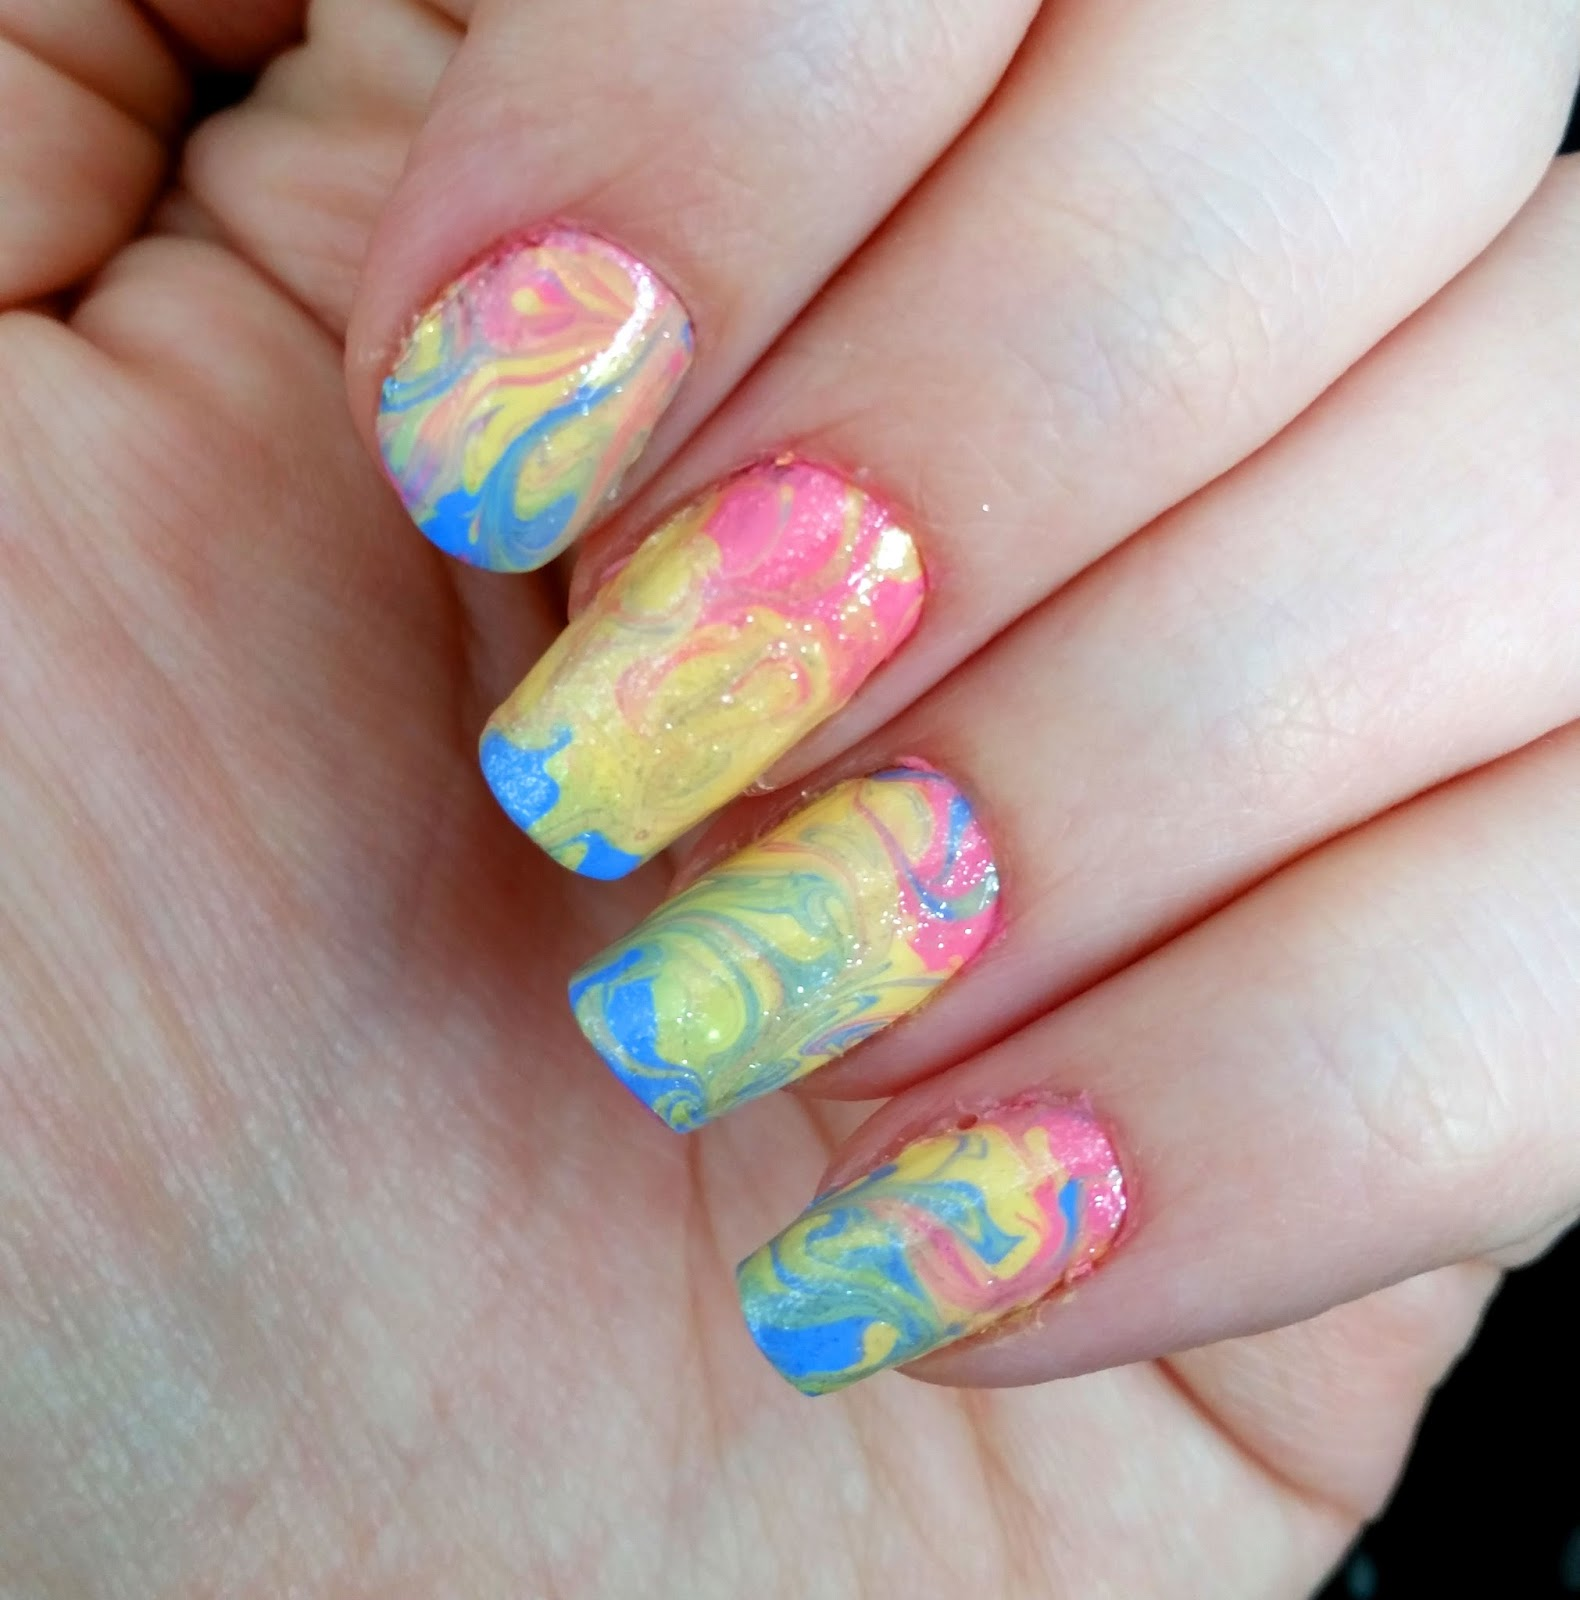 A mini tutorial on how to create watermarble nails using a cheat method